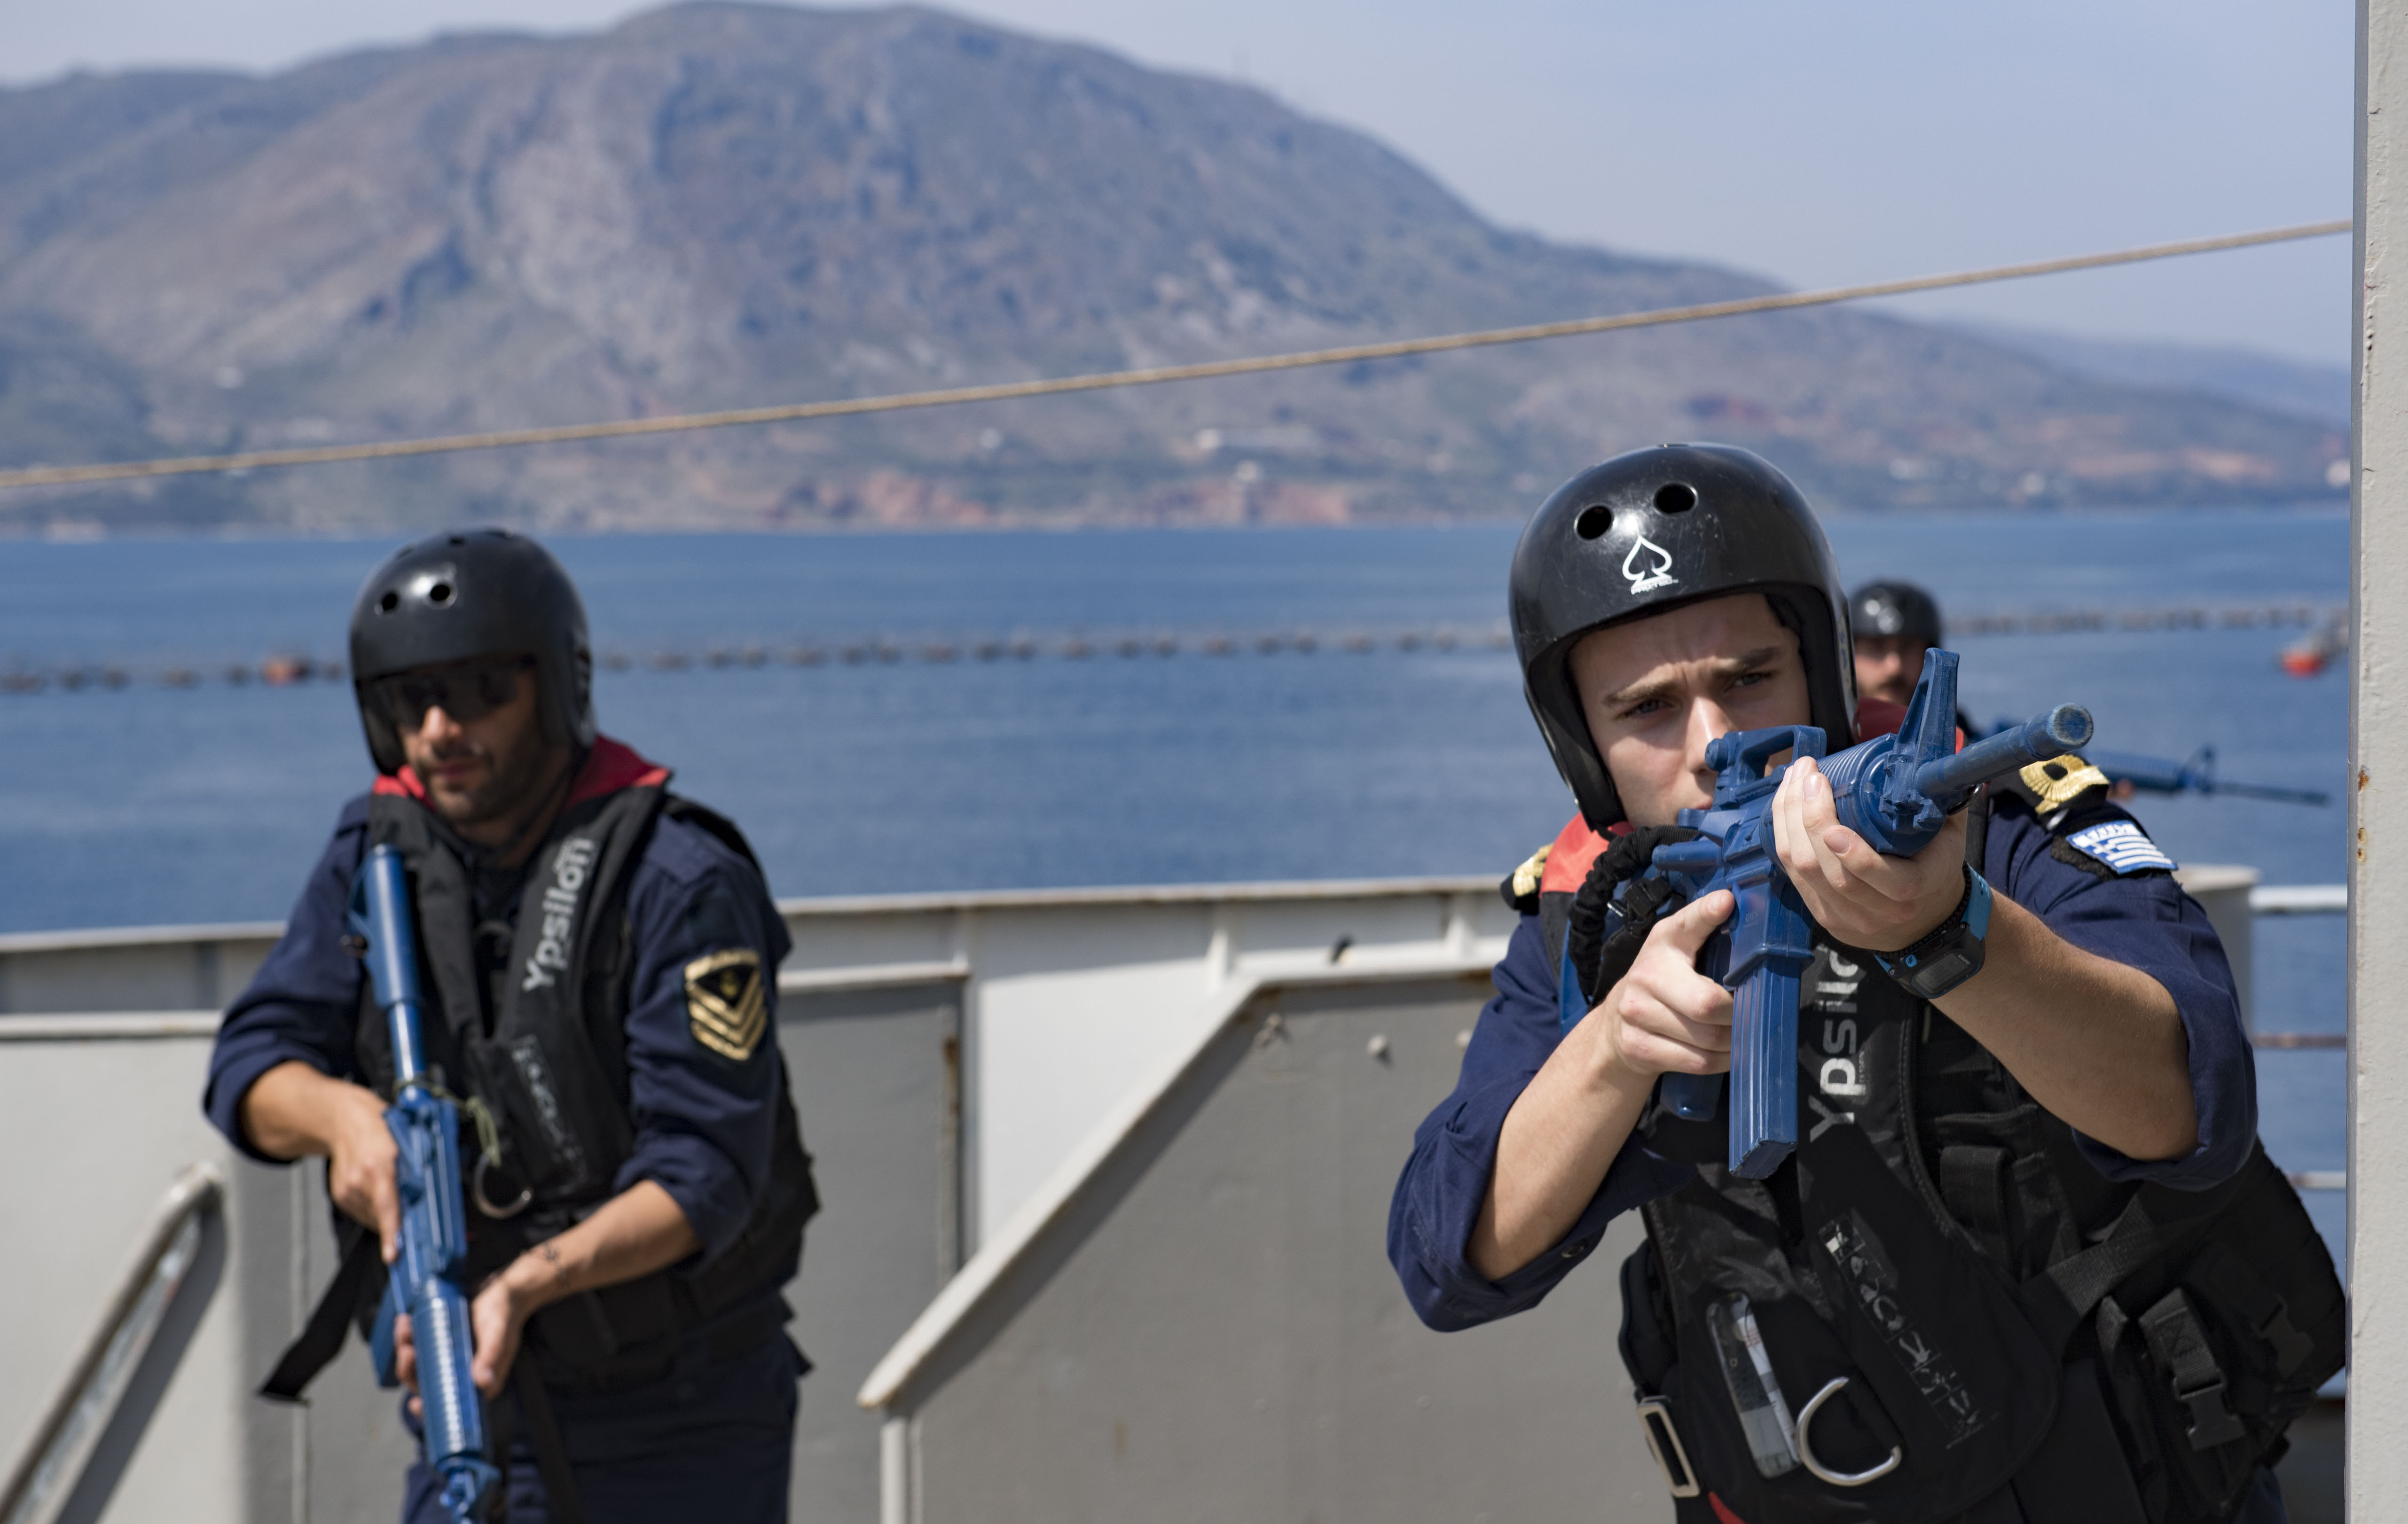 180502-N-UY653-310  SOUDA BAY, Greece (May 2, 2018) Hellenic Navy sailors participate in visit, board, search and seizure training during exercise Phoenix Express 2018, May 2. Phoenix Express is sponsored by U.S. Africa Command and facilitated by U.S. Naval Forces Europe-Africa/U.S. 6th Fleet, and is designed to improve regional cooperation, increase maritime domain awareness information sharing practices, and operational capabilities to enhance efforts to achieve safety and security in the Mediterranean Sea. (U.S. Navy photo by Mass Communication Specialist 2nd Class Ryan U. Kledzik/Released)